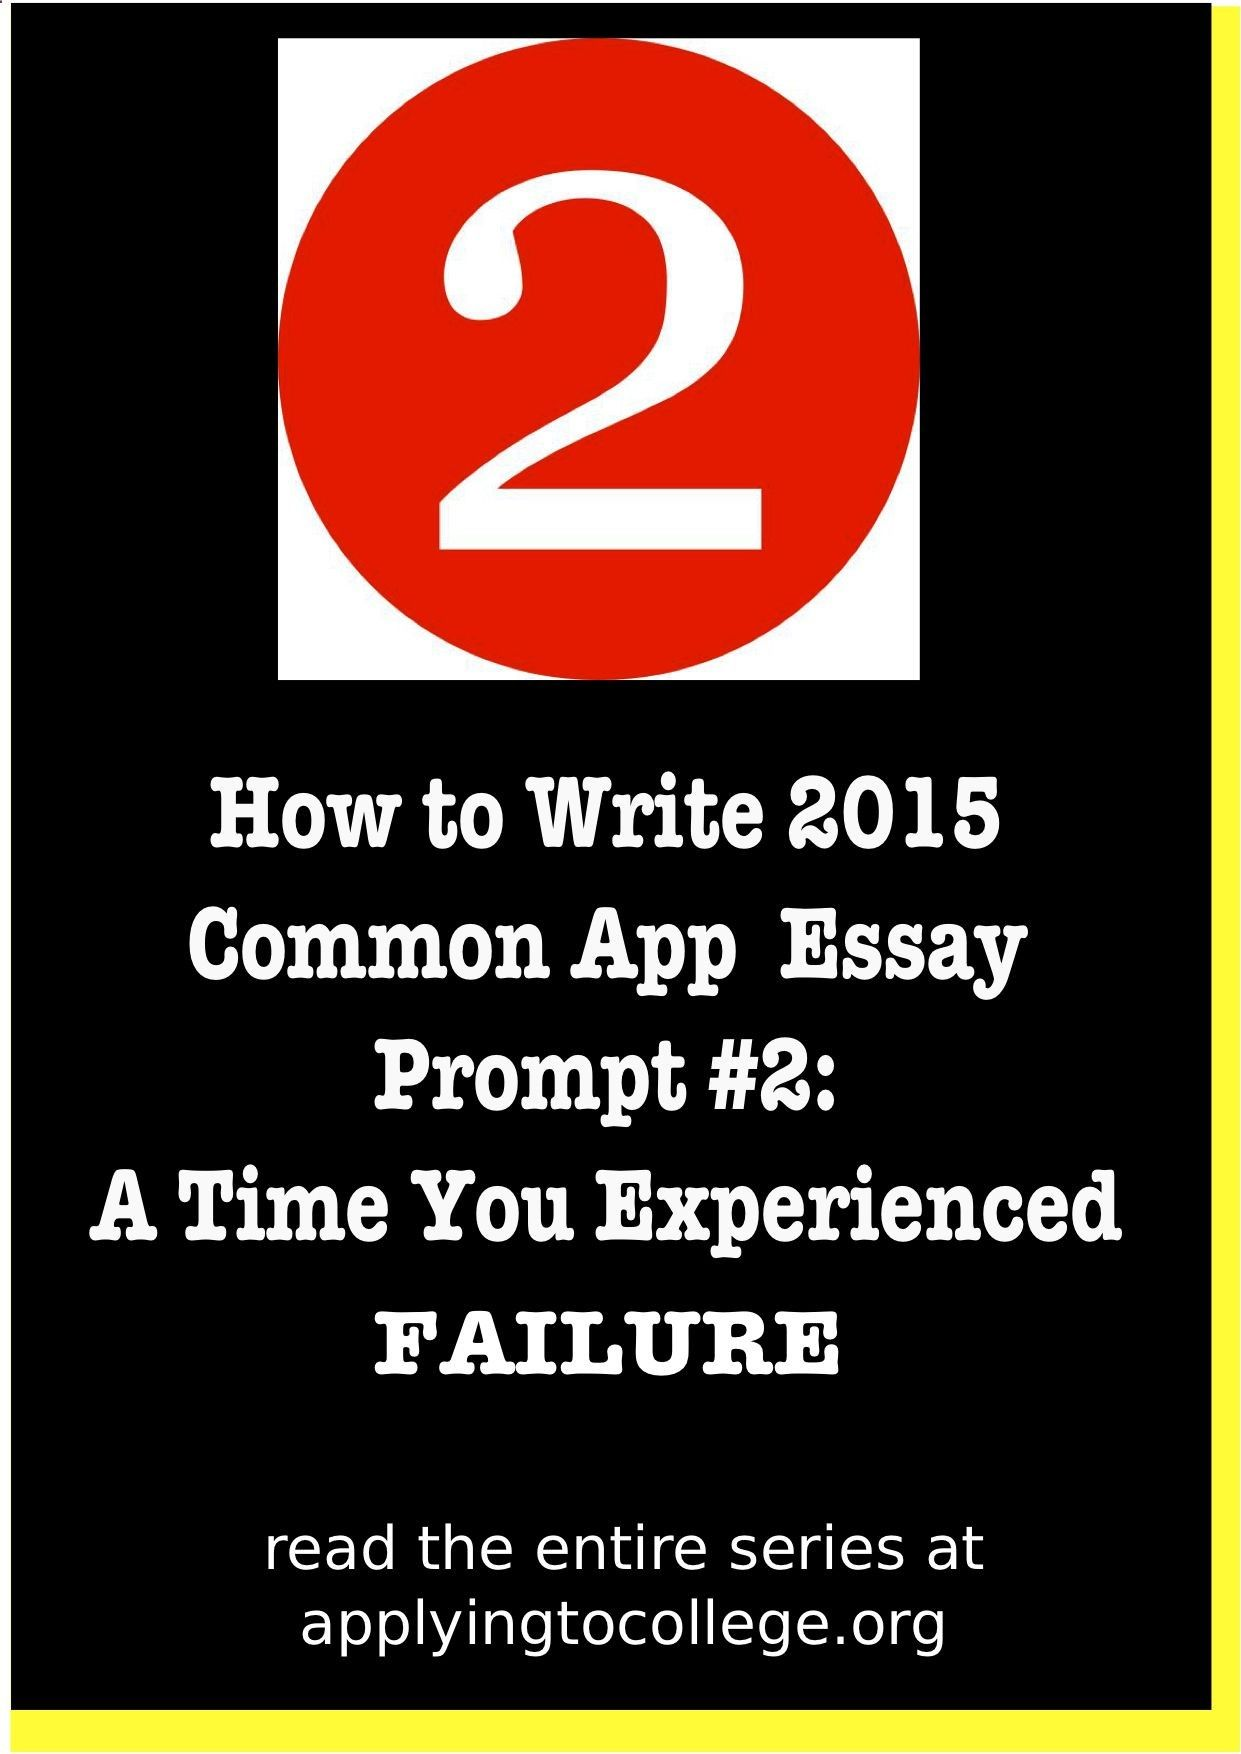 how to write 2015 Common Application failure essay. A Time